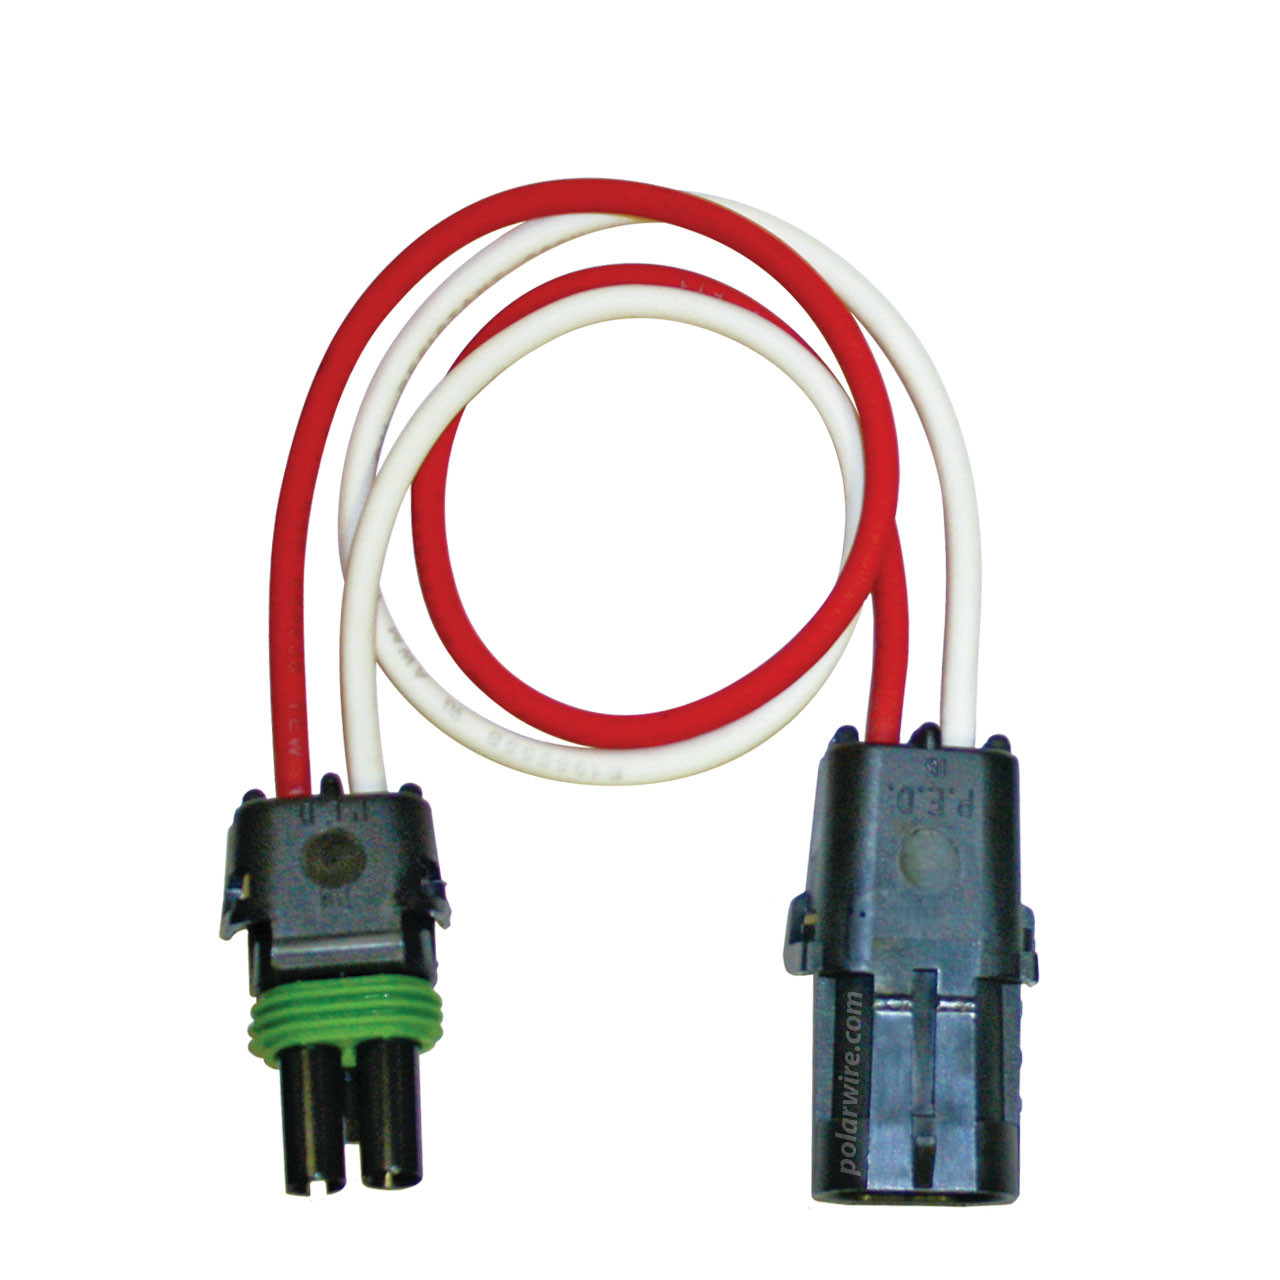 12 inch 2 pole Weather Pack Pigtail wired with 16 AWG Arctic Ultraflex Blue wire in red and white